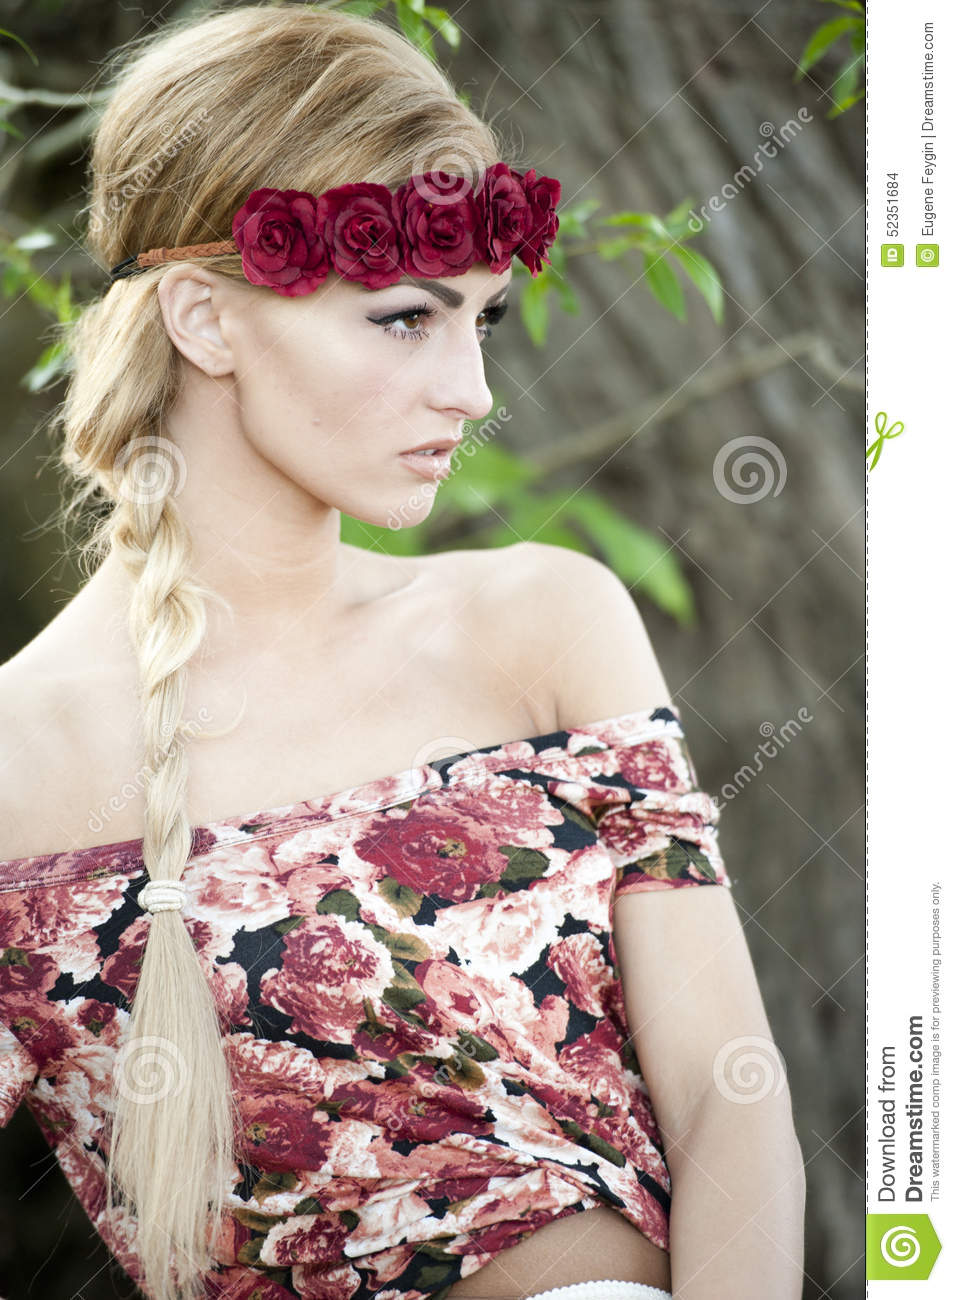 Gorgeous Blonde In Red Flower Crown Stock Photo Image Of Nature